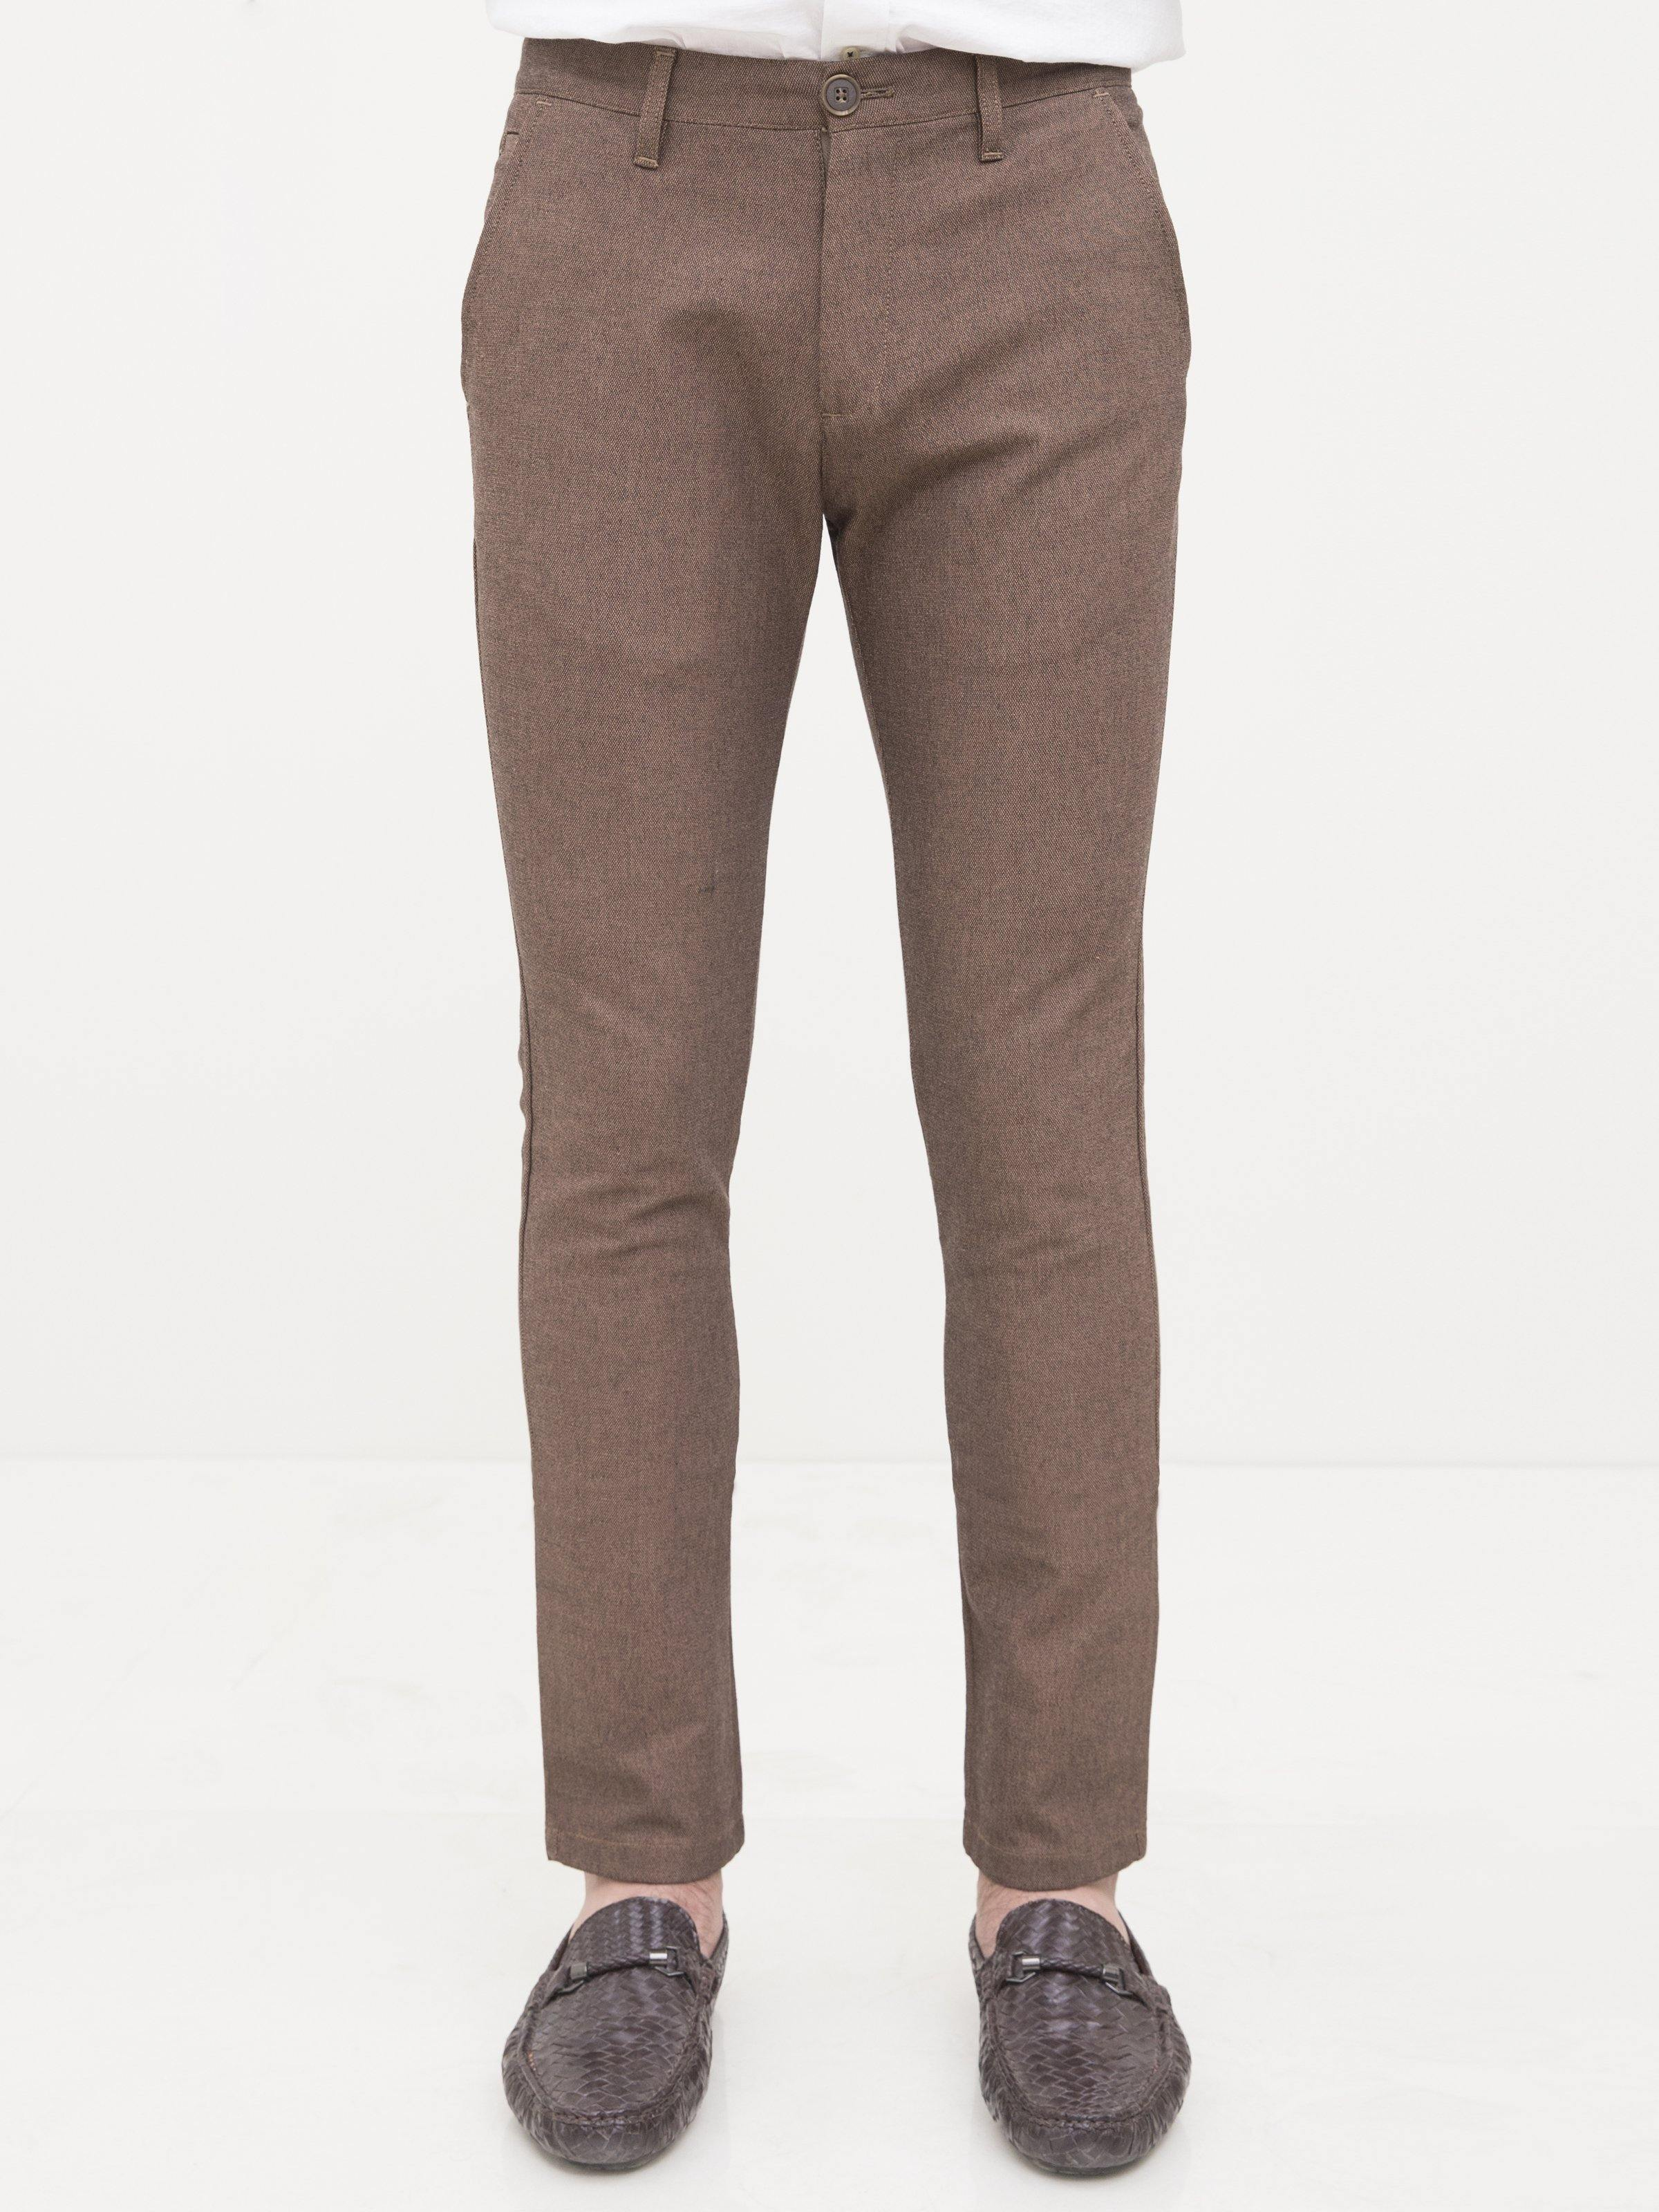 CASUAL PANT CROSS POCKET SLIM FIT BROWN - Charcoal Clothing